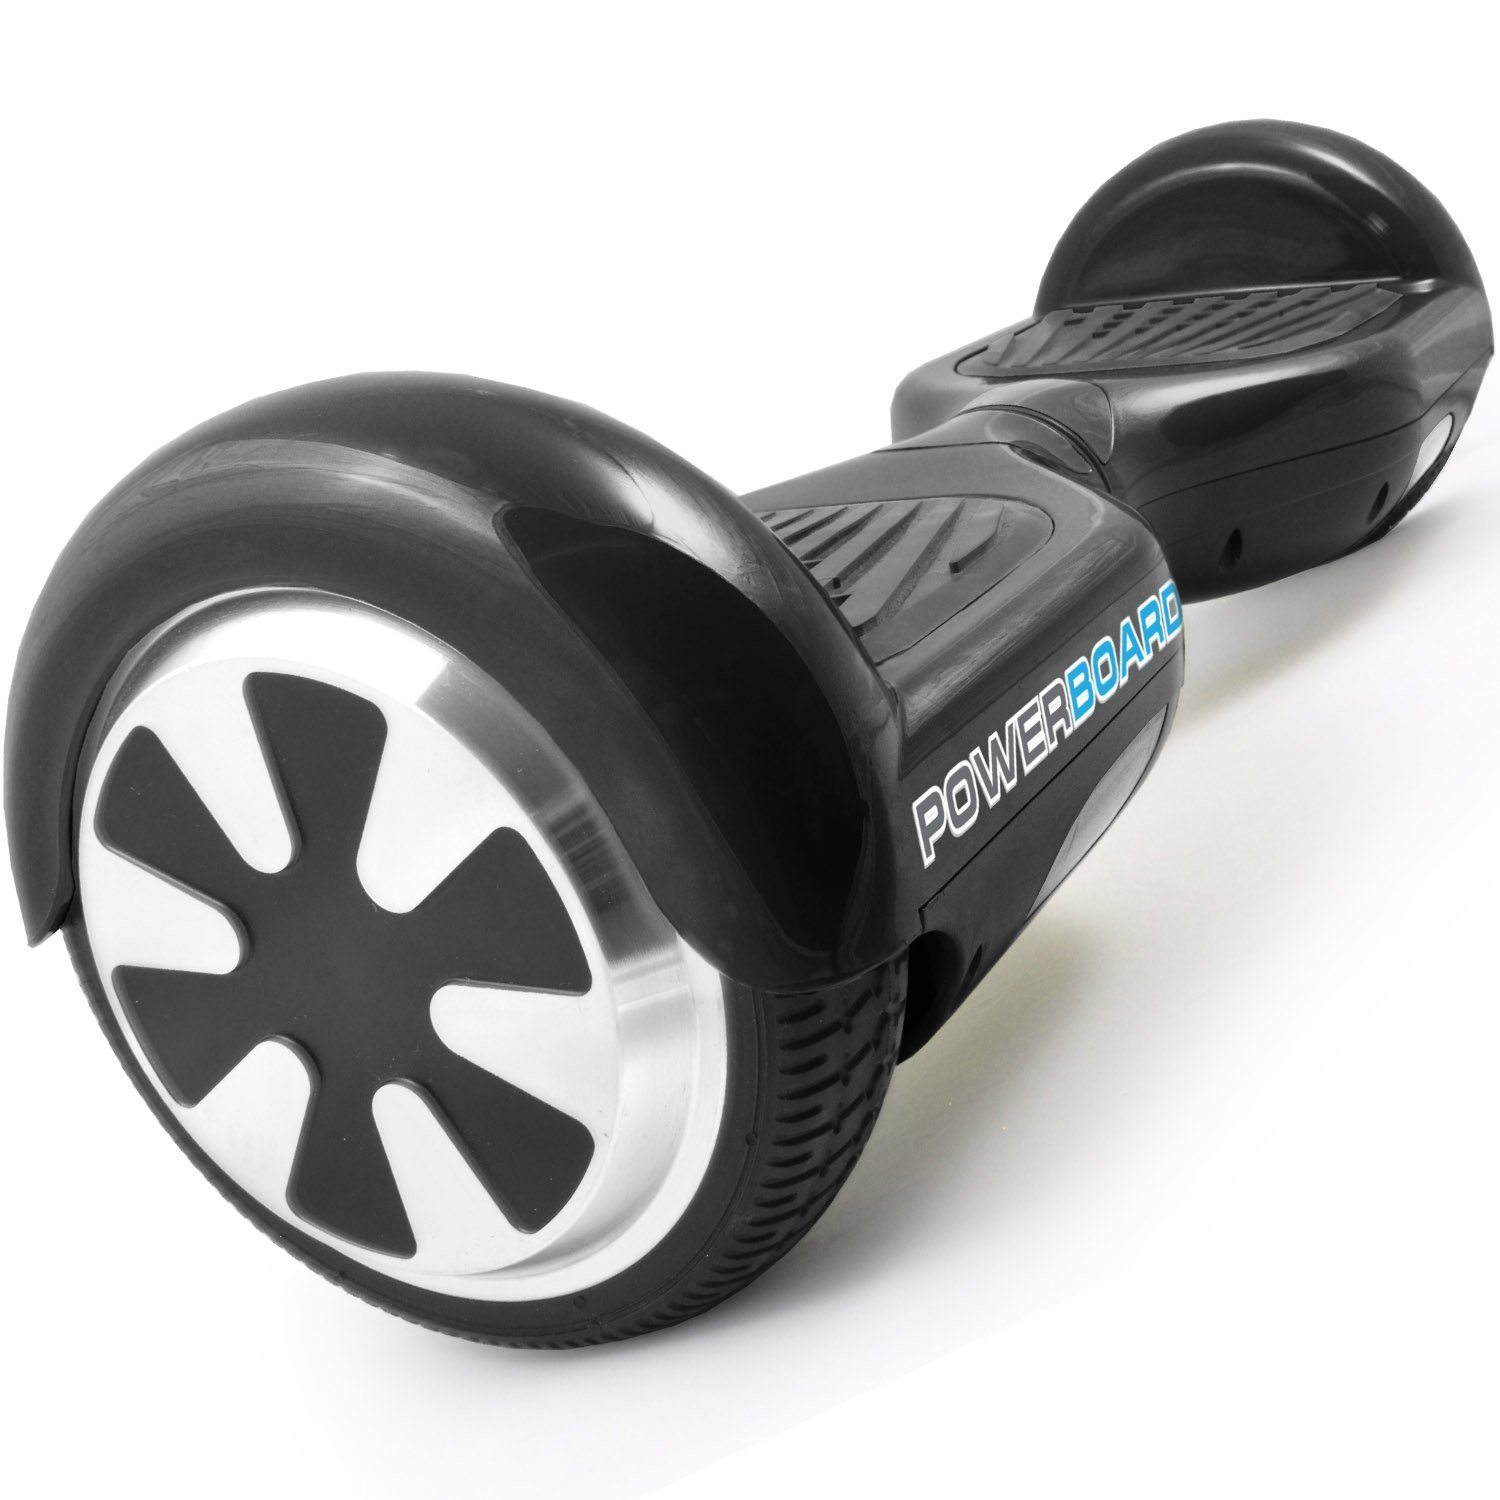 71PkDukDvqL. SL1500  - Powerboard by HOVERBOARD - 2 Wheel Self Balancing Scooter with LED Lights-Hands Free Battery Powered Electric Motor-The Perfect Personal Transporter-USA Company (black)